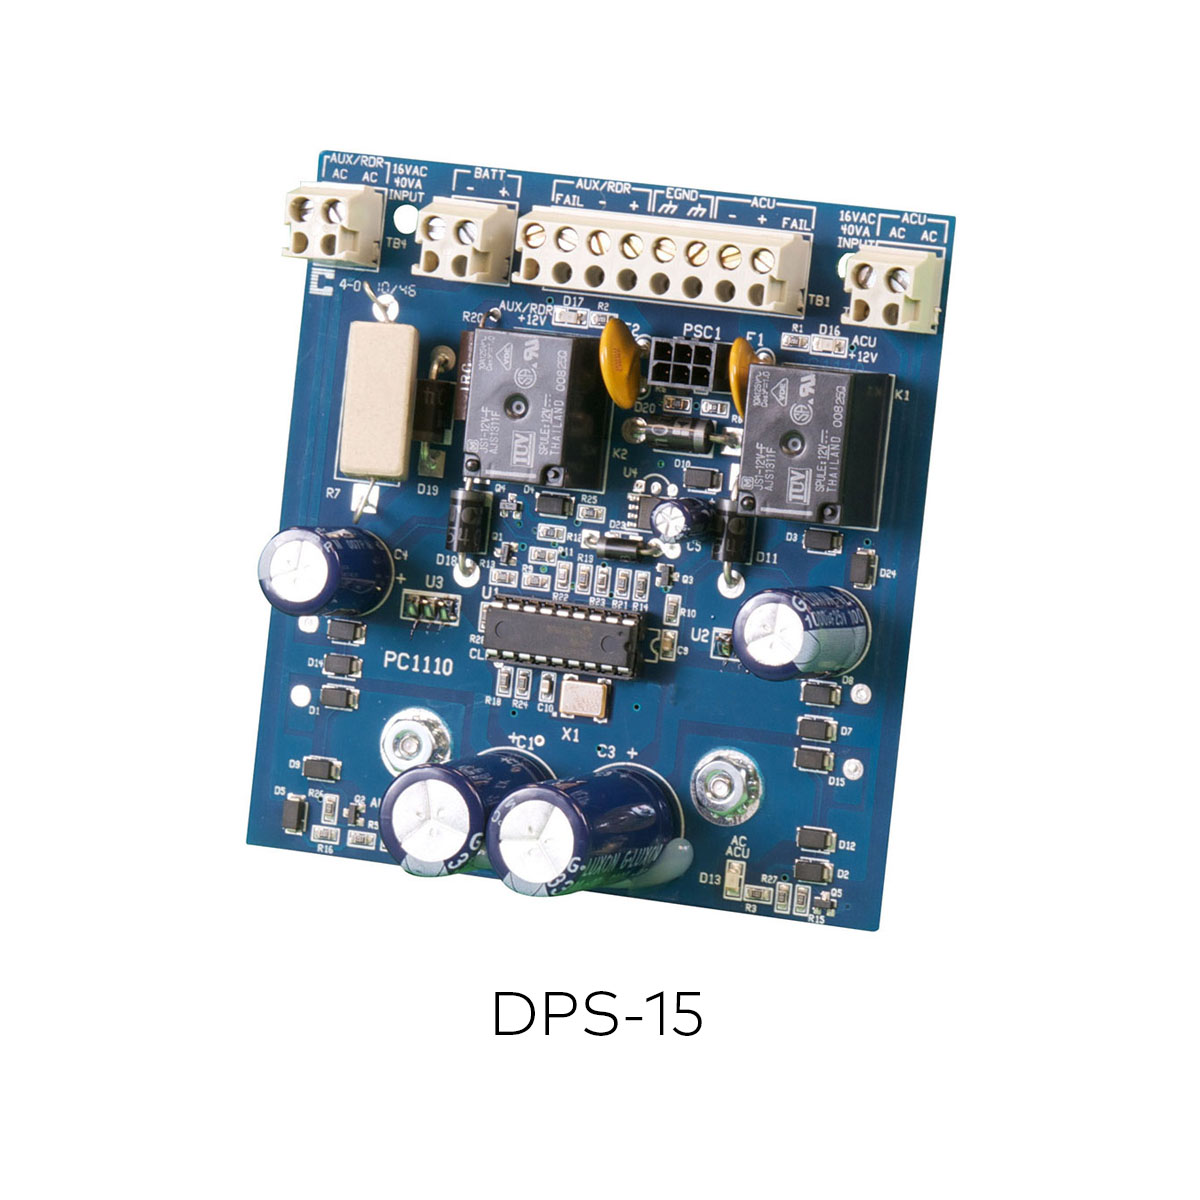 DPS 15 Peripherals Controllers Keyscan EAD